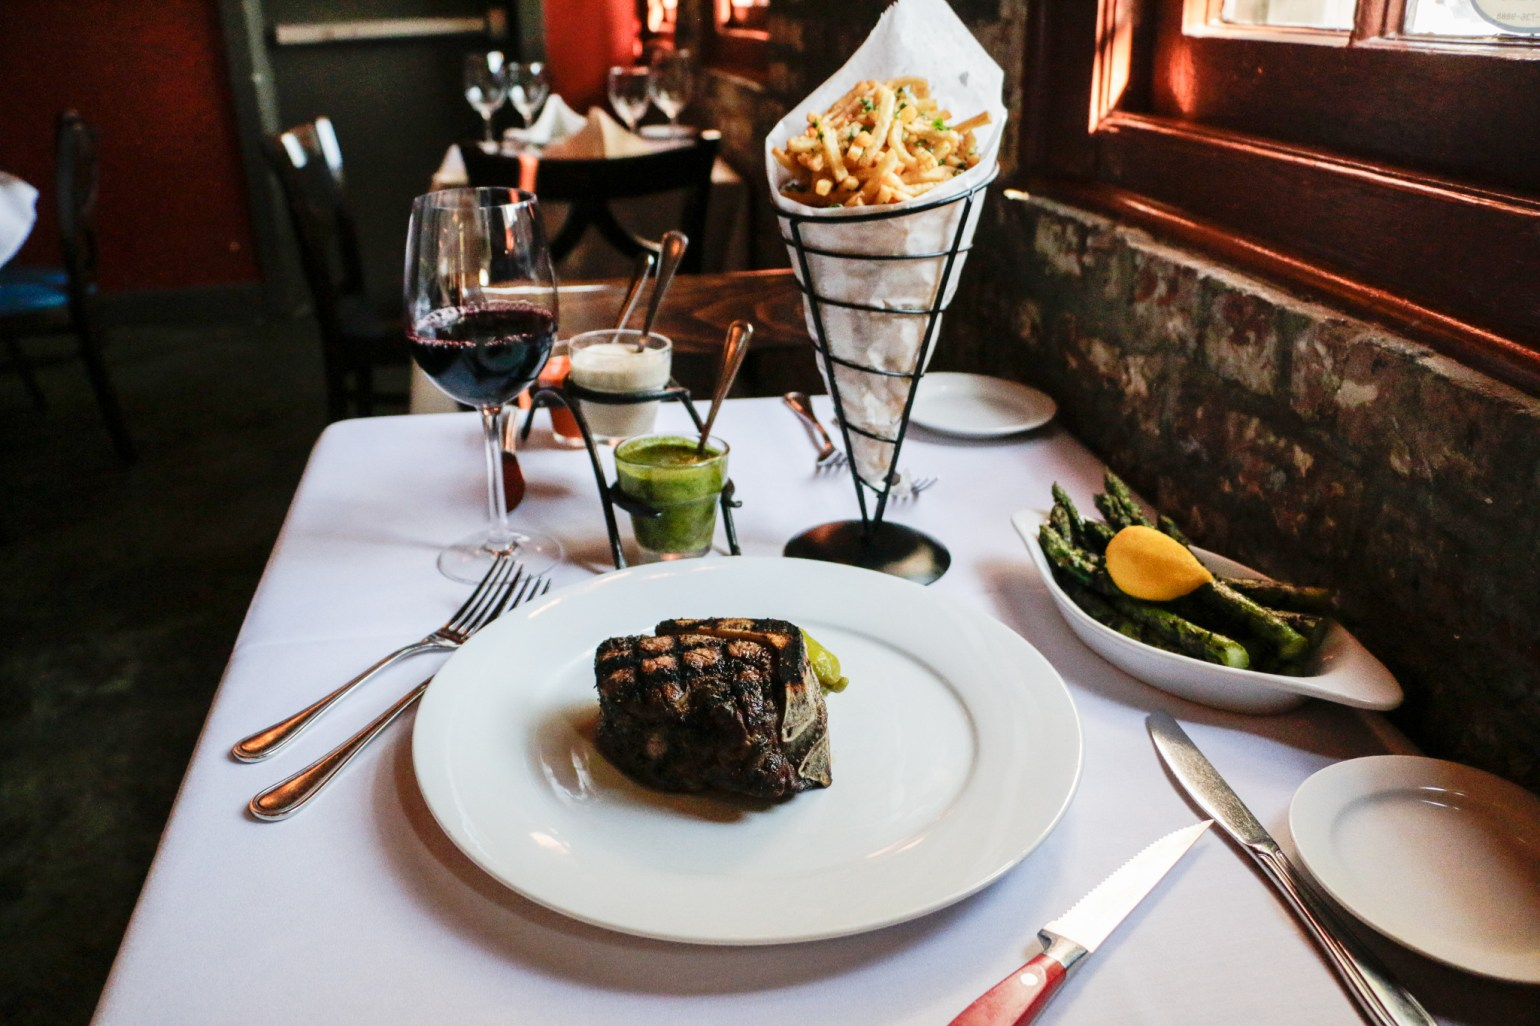 Steak, French fries, and asparagus at La Boca. (Photo: Rebecca Ratliff)